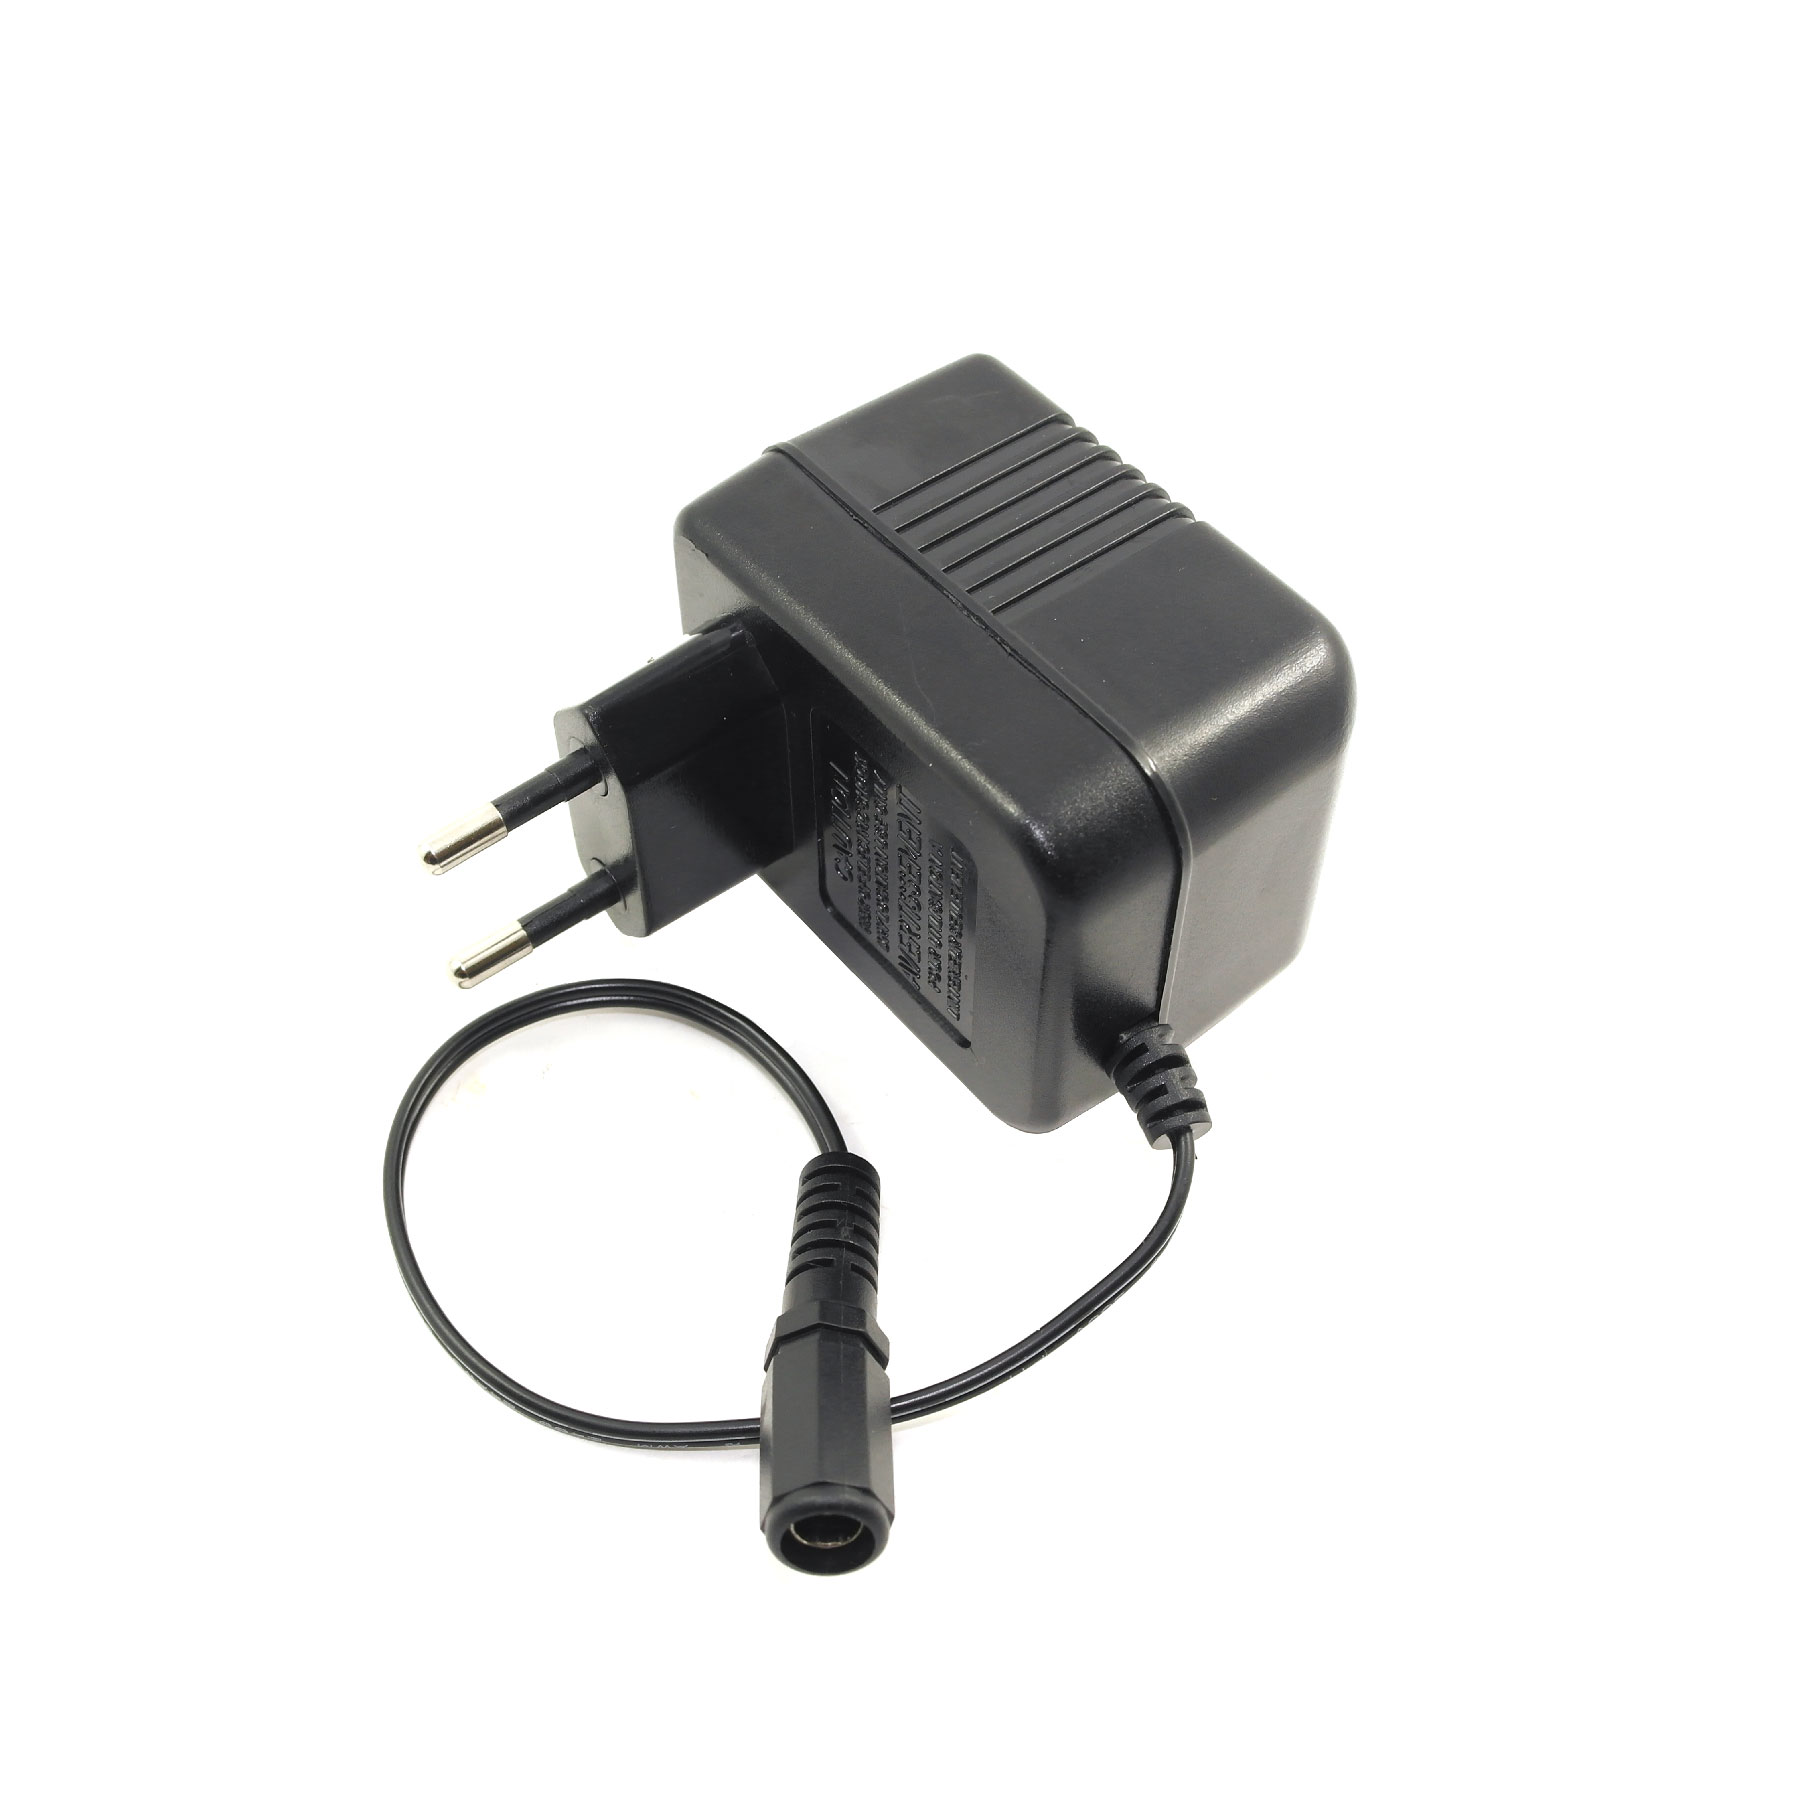 12VAC 0.5A Linear power supply,AC/AC adapter